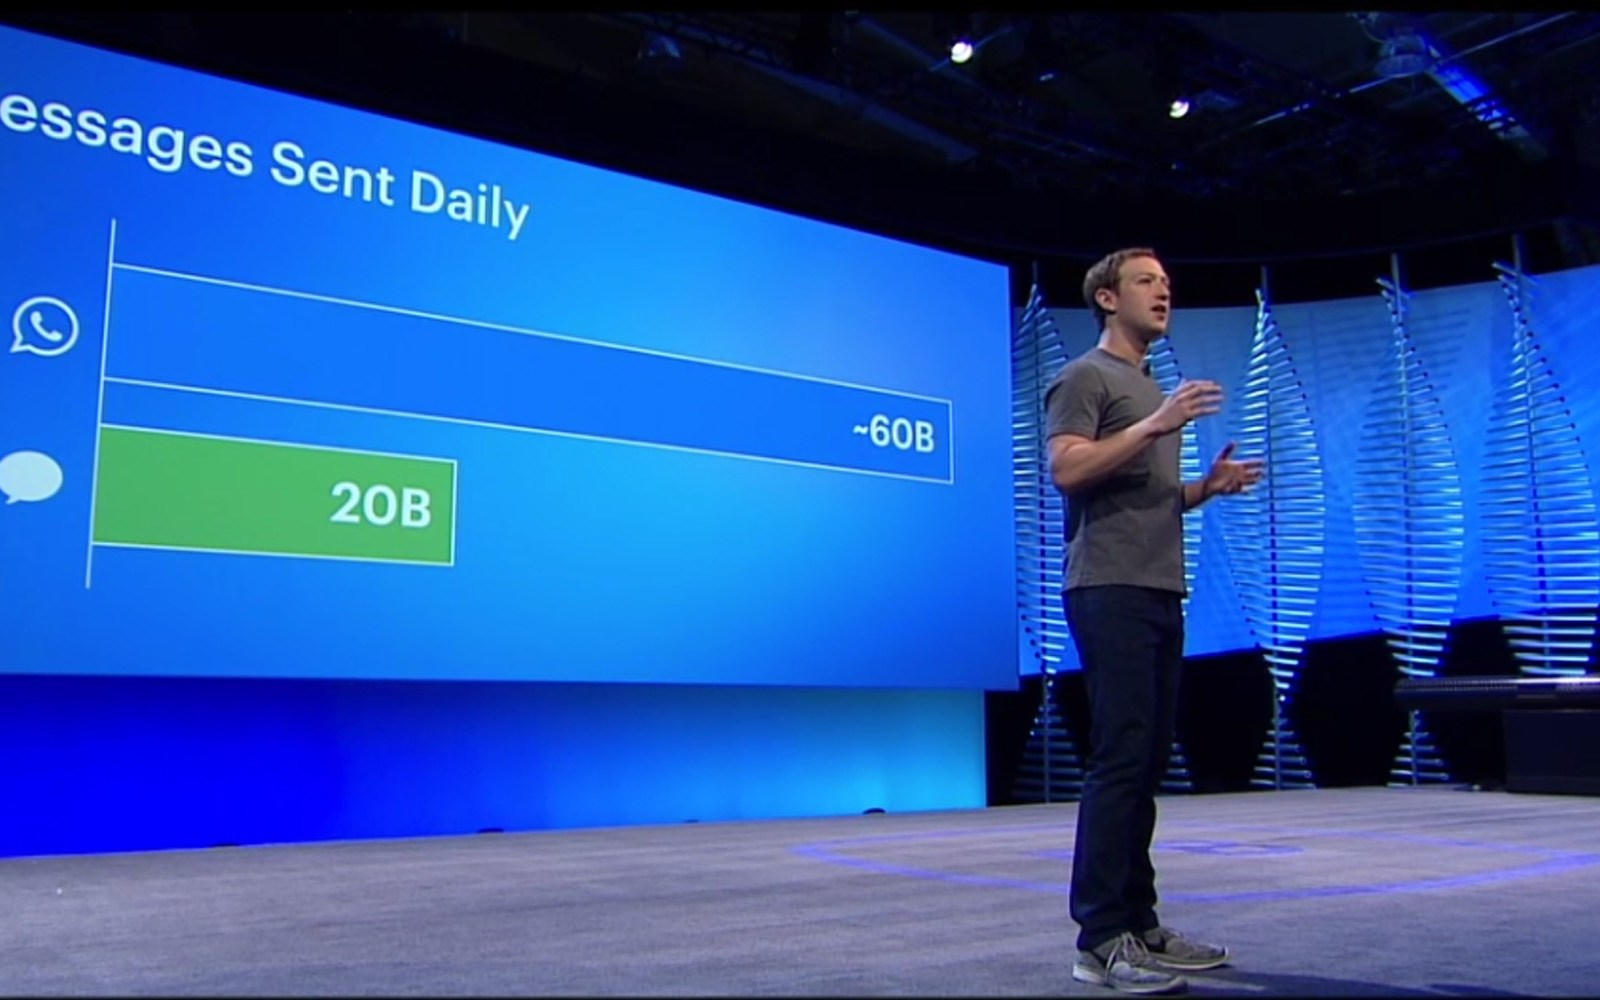 Here's everything Facebook announced at F8 that's coming soon to your iPhone